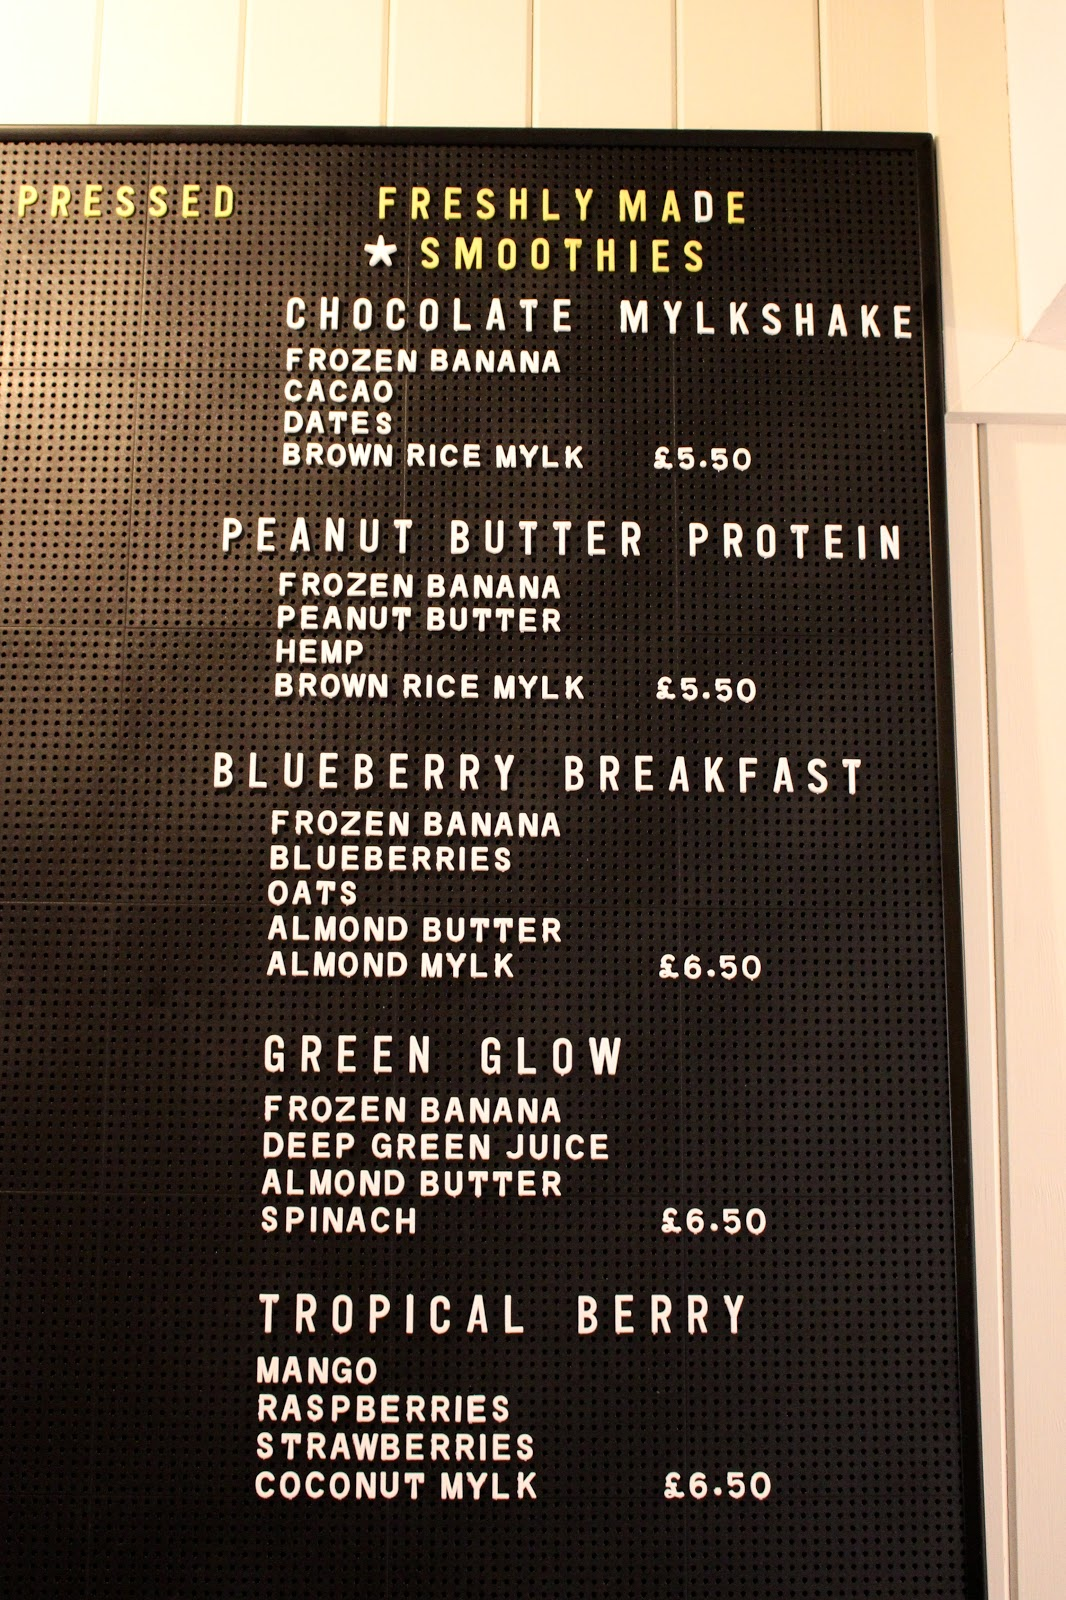 The Mae Deli by Deliciously Ella drinks menu